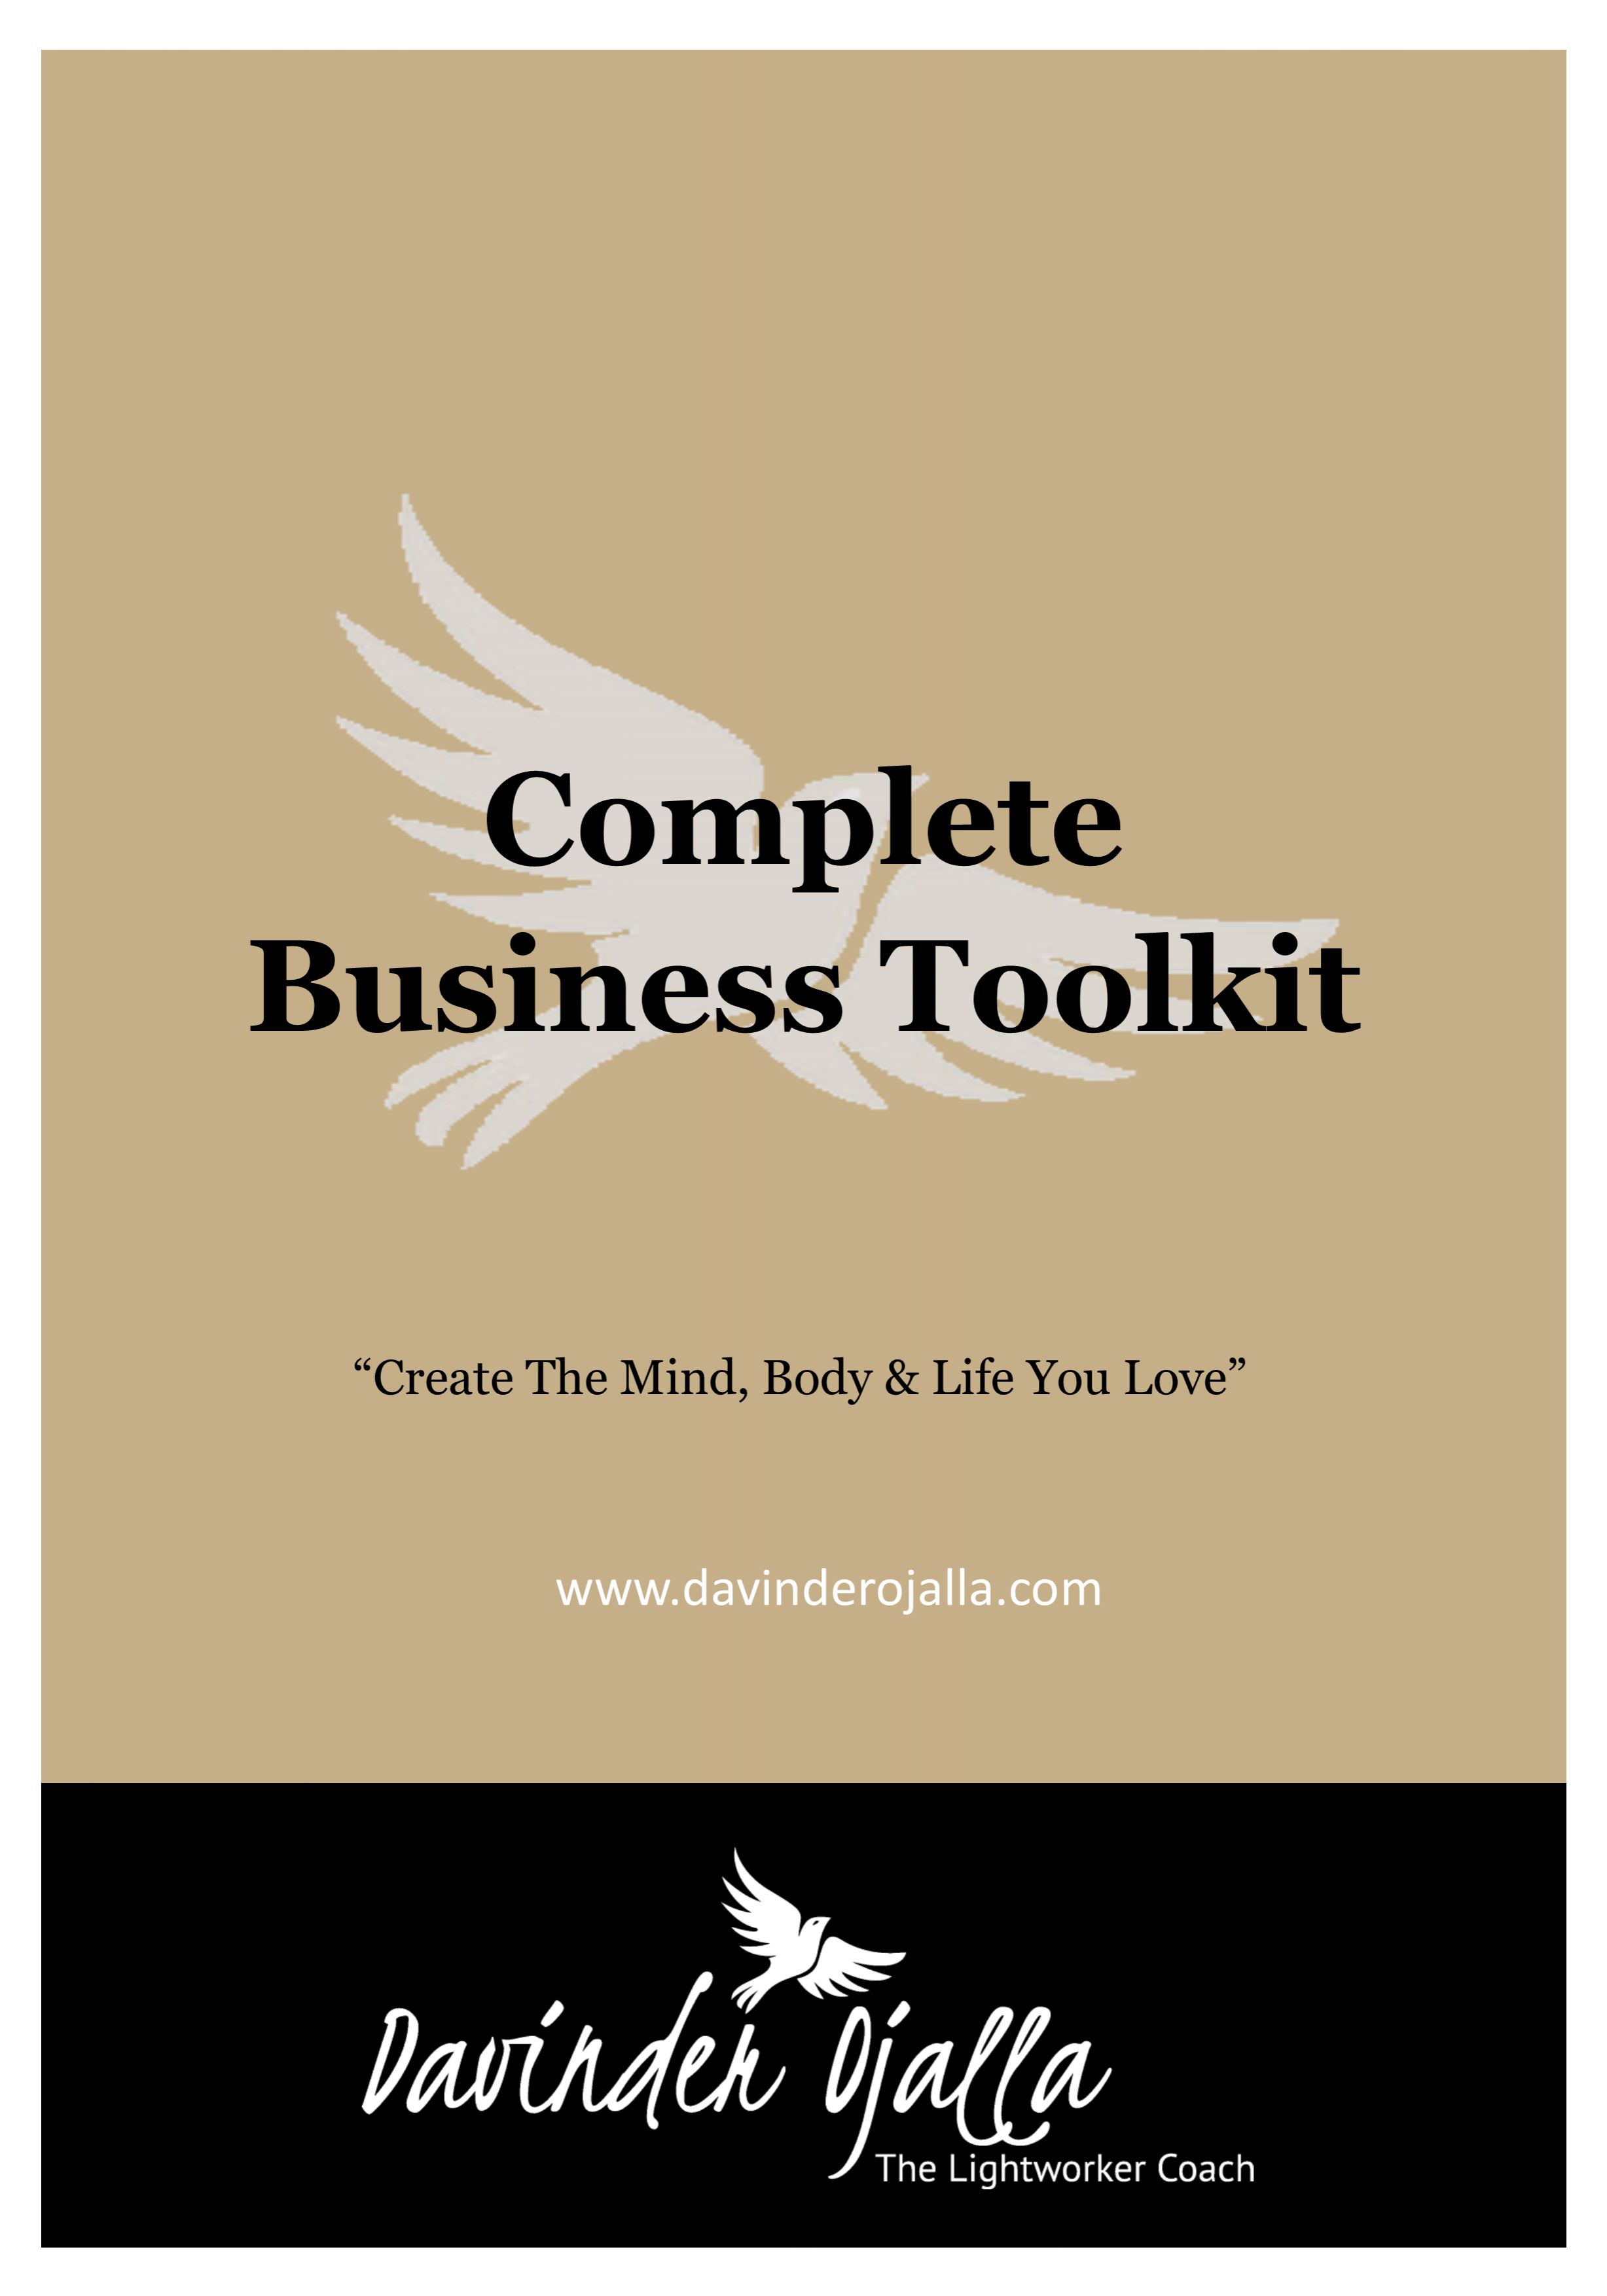 Complete Business Toolkit v2